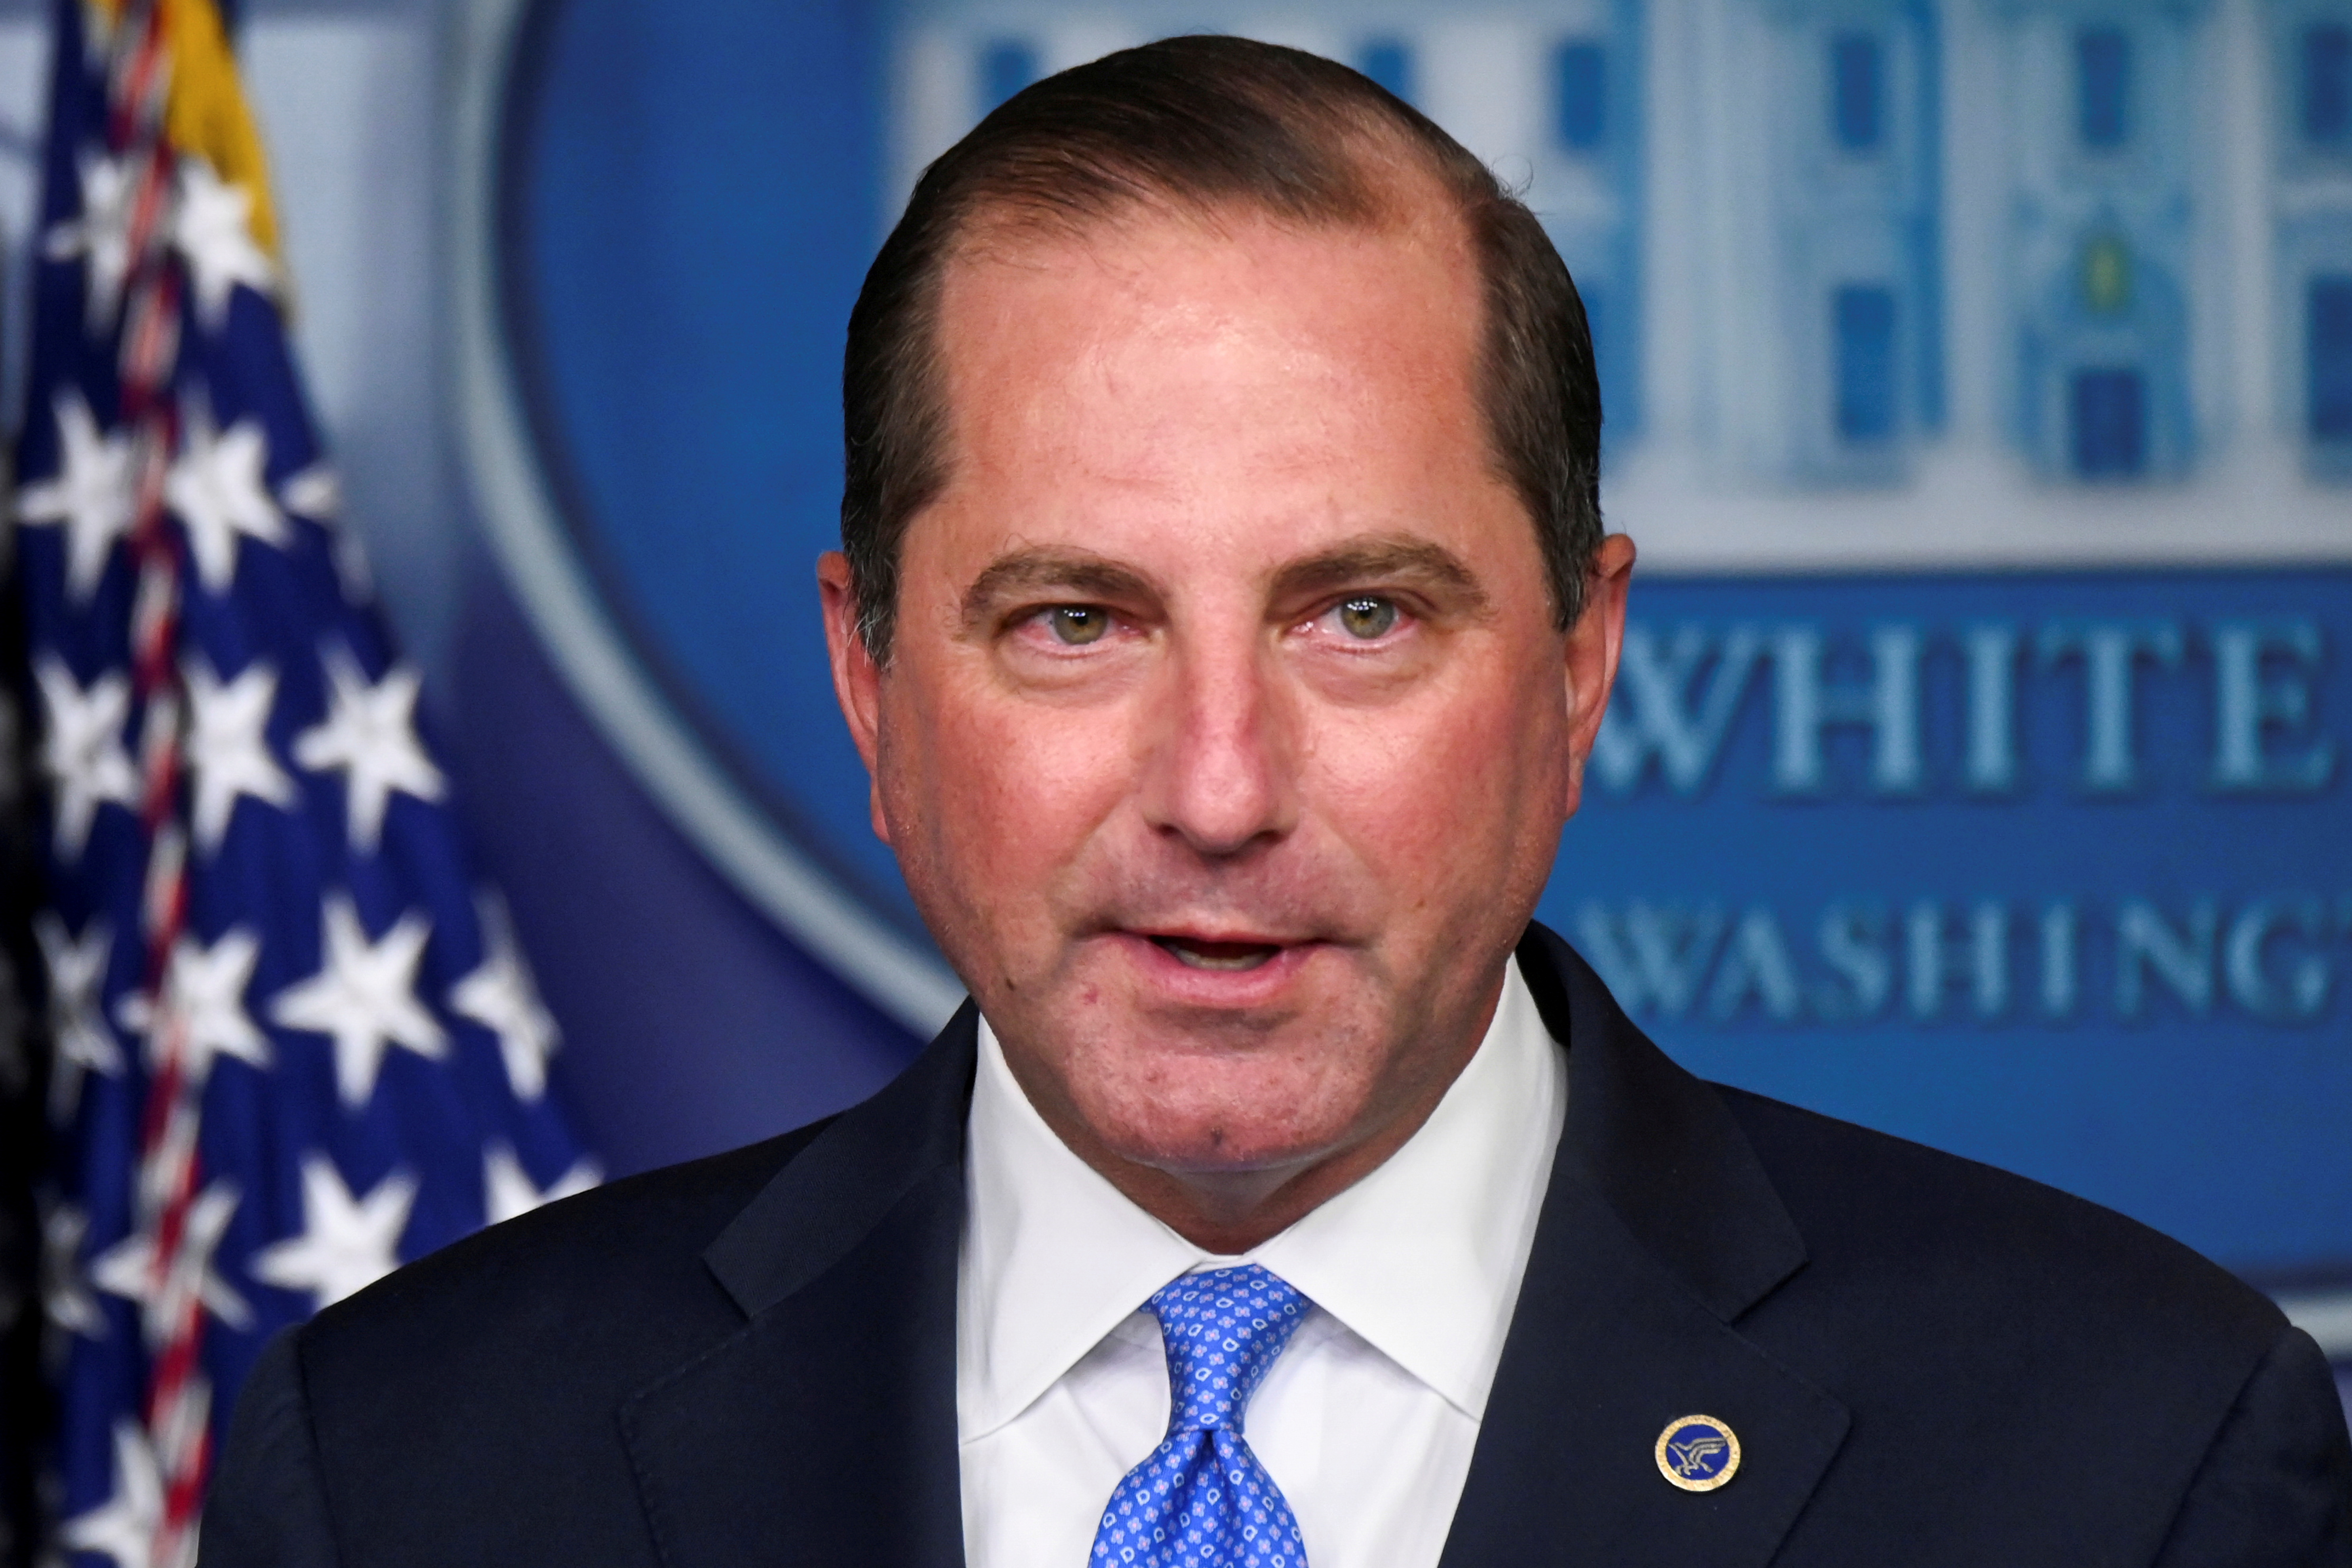 U.S. Health and Human Services (HHS) Secretary Alex Azar speaks during a news conference in the Brady Press Briefing Room of the White House in Washington, U.S. August 23, 2020. Picture taken August 23, 2020. REUTERS/Erin Scott